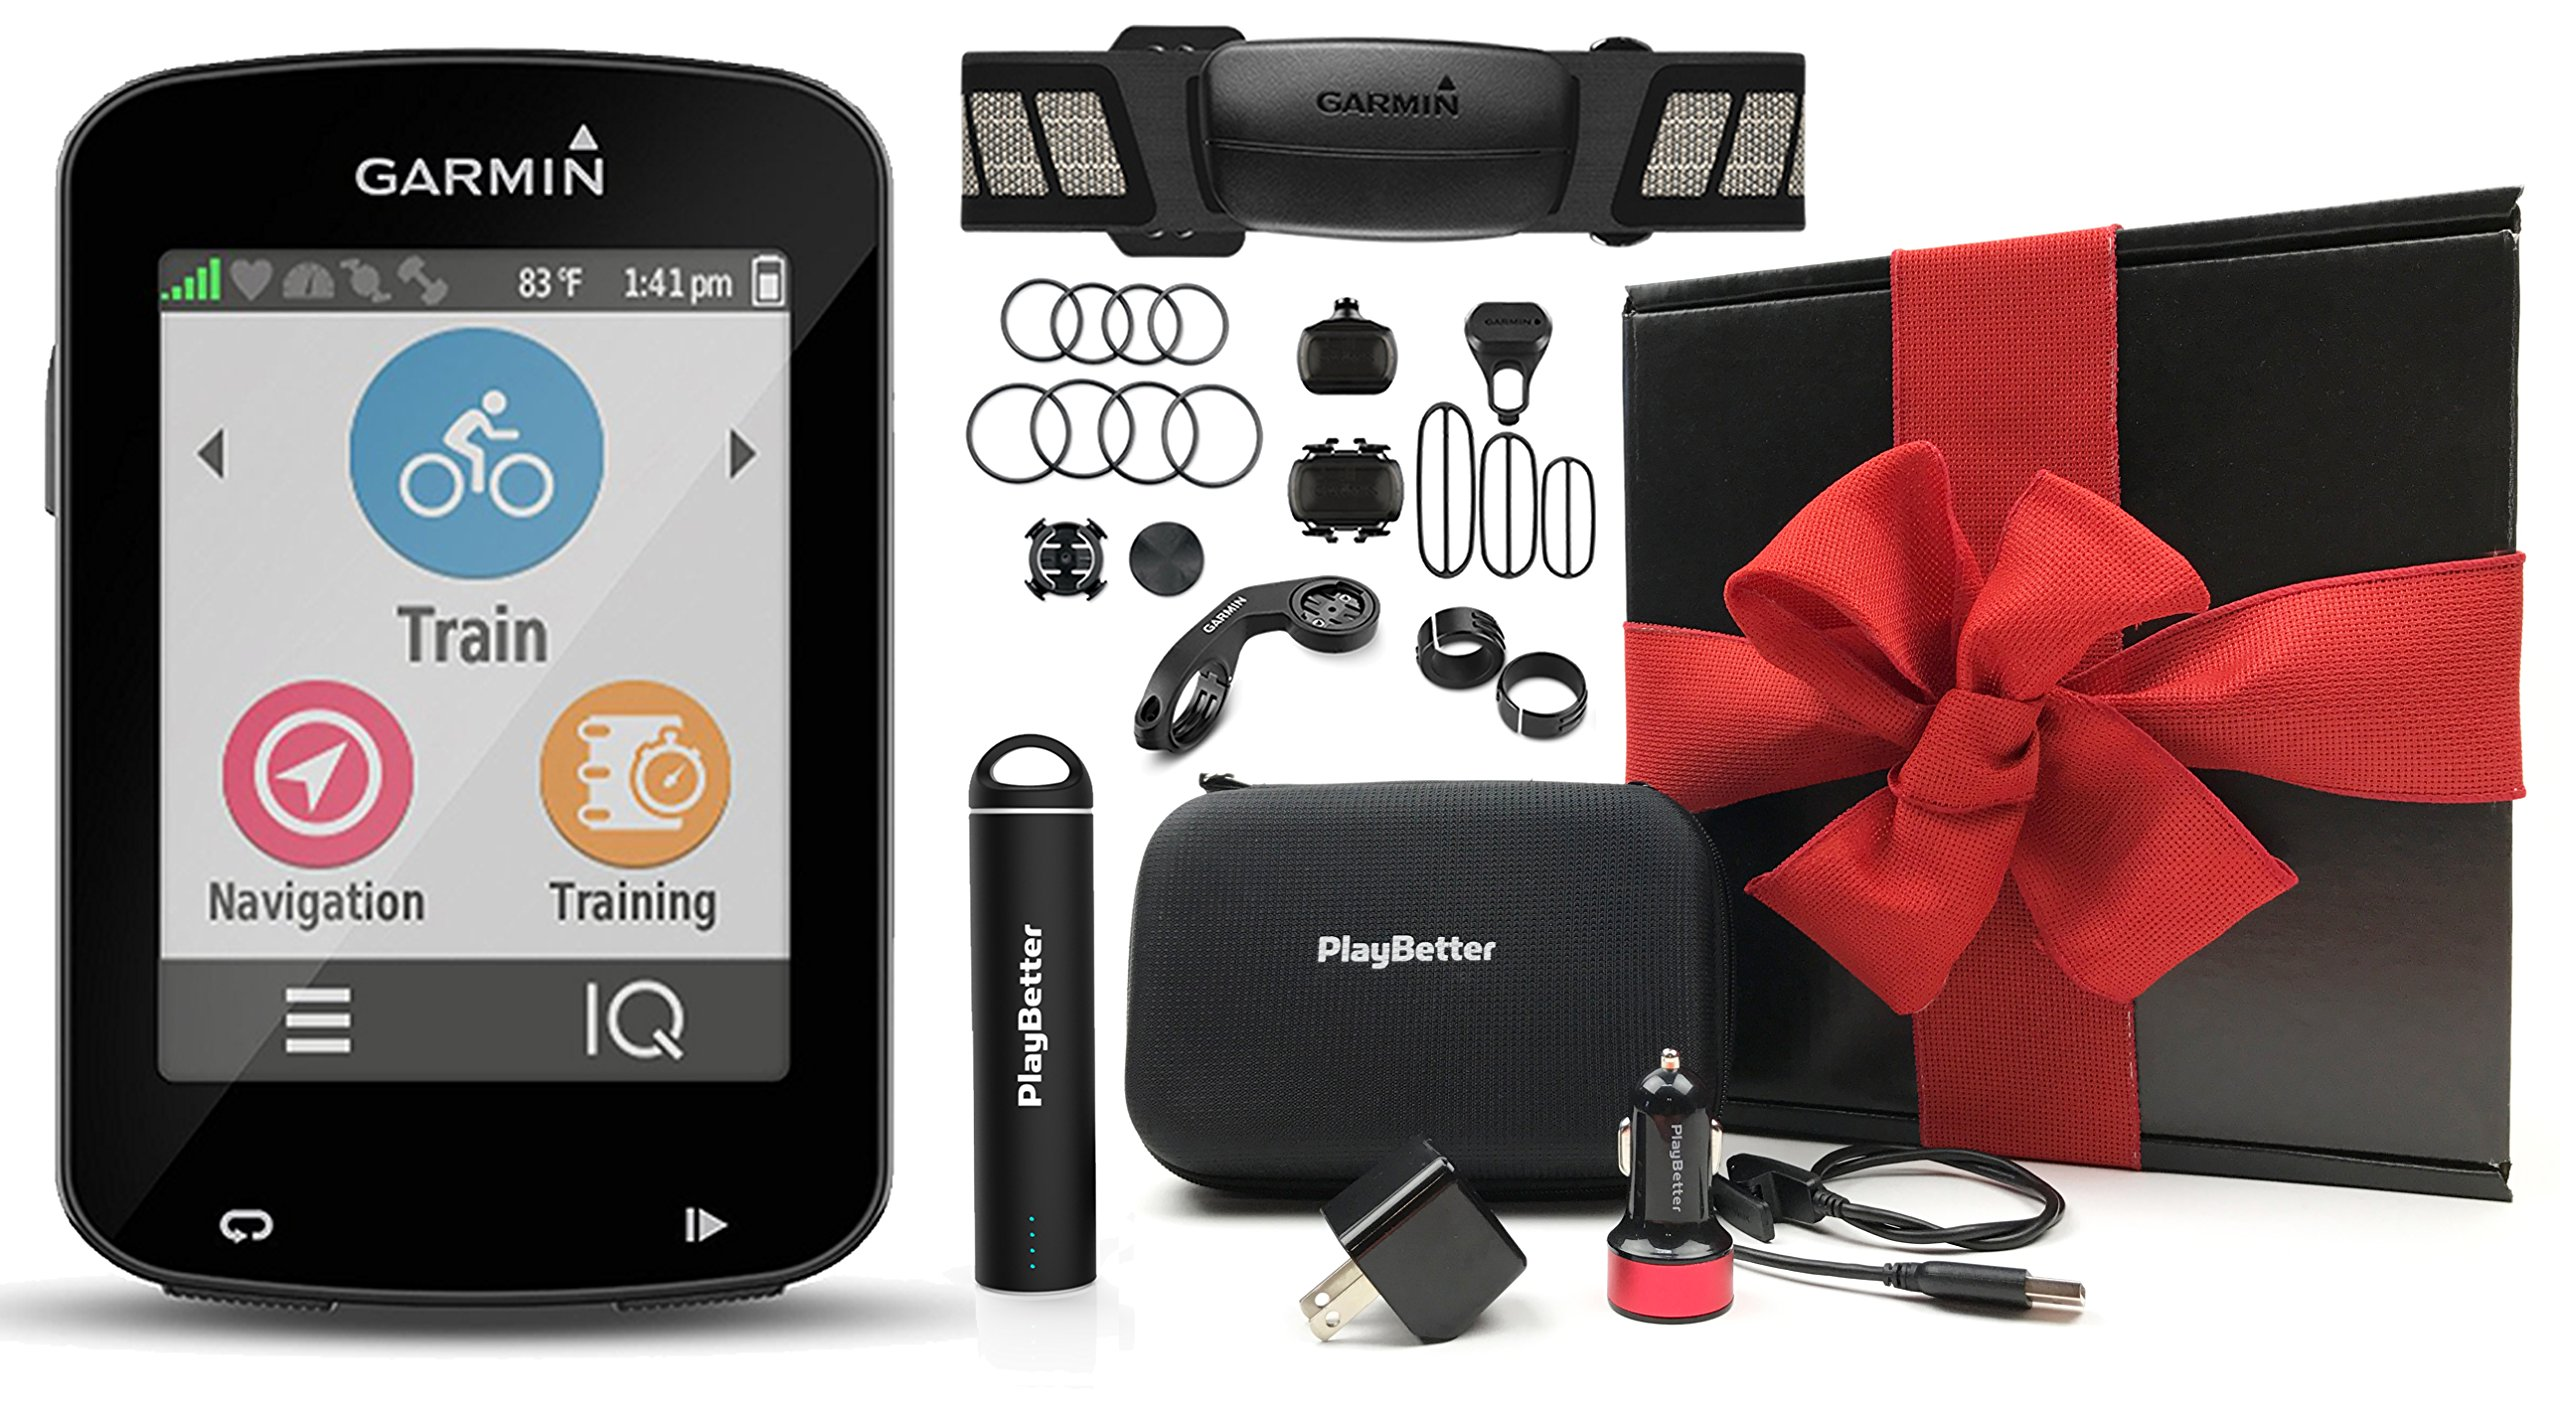 Garmin Edge 820 Cycle Bundle GIFT BOX with Garmin Chest Strap HRM, Cadence & Speed Sensors, PlayBetter Portable USB Charger & Hard Carrying Case, Bike Mounts, USB Cable | Gift Box | GPS Bike Computer